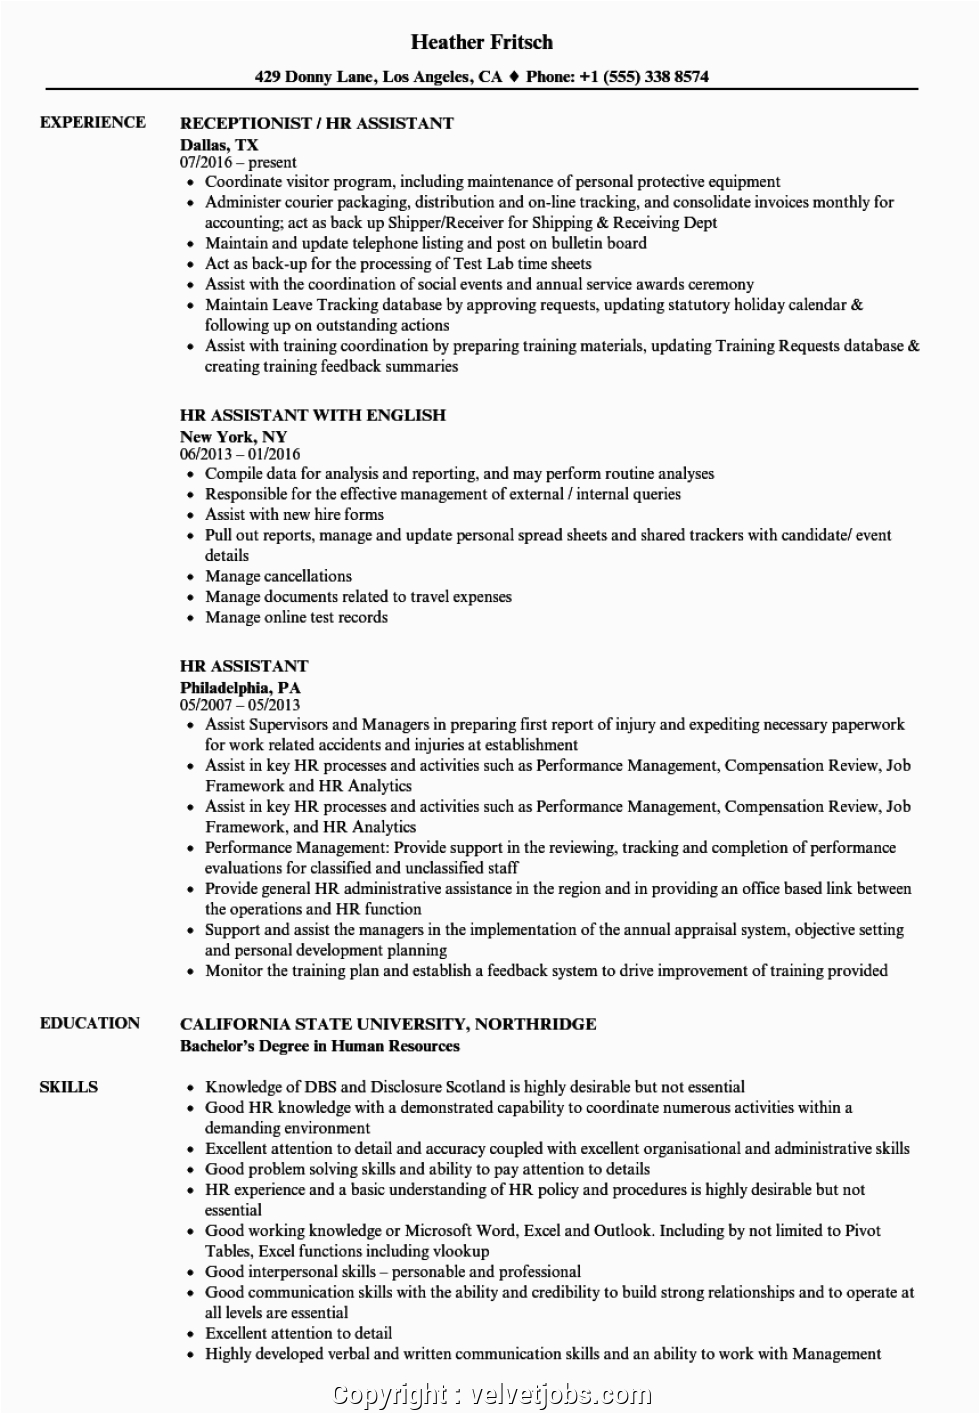 free human resources assistant resume